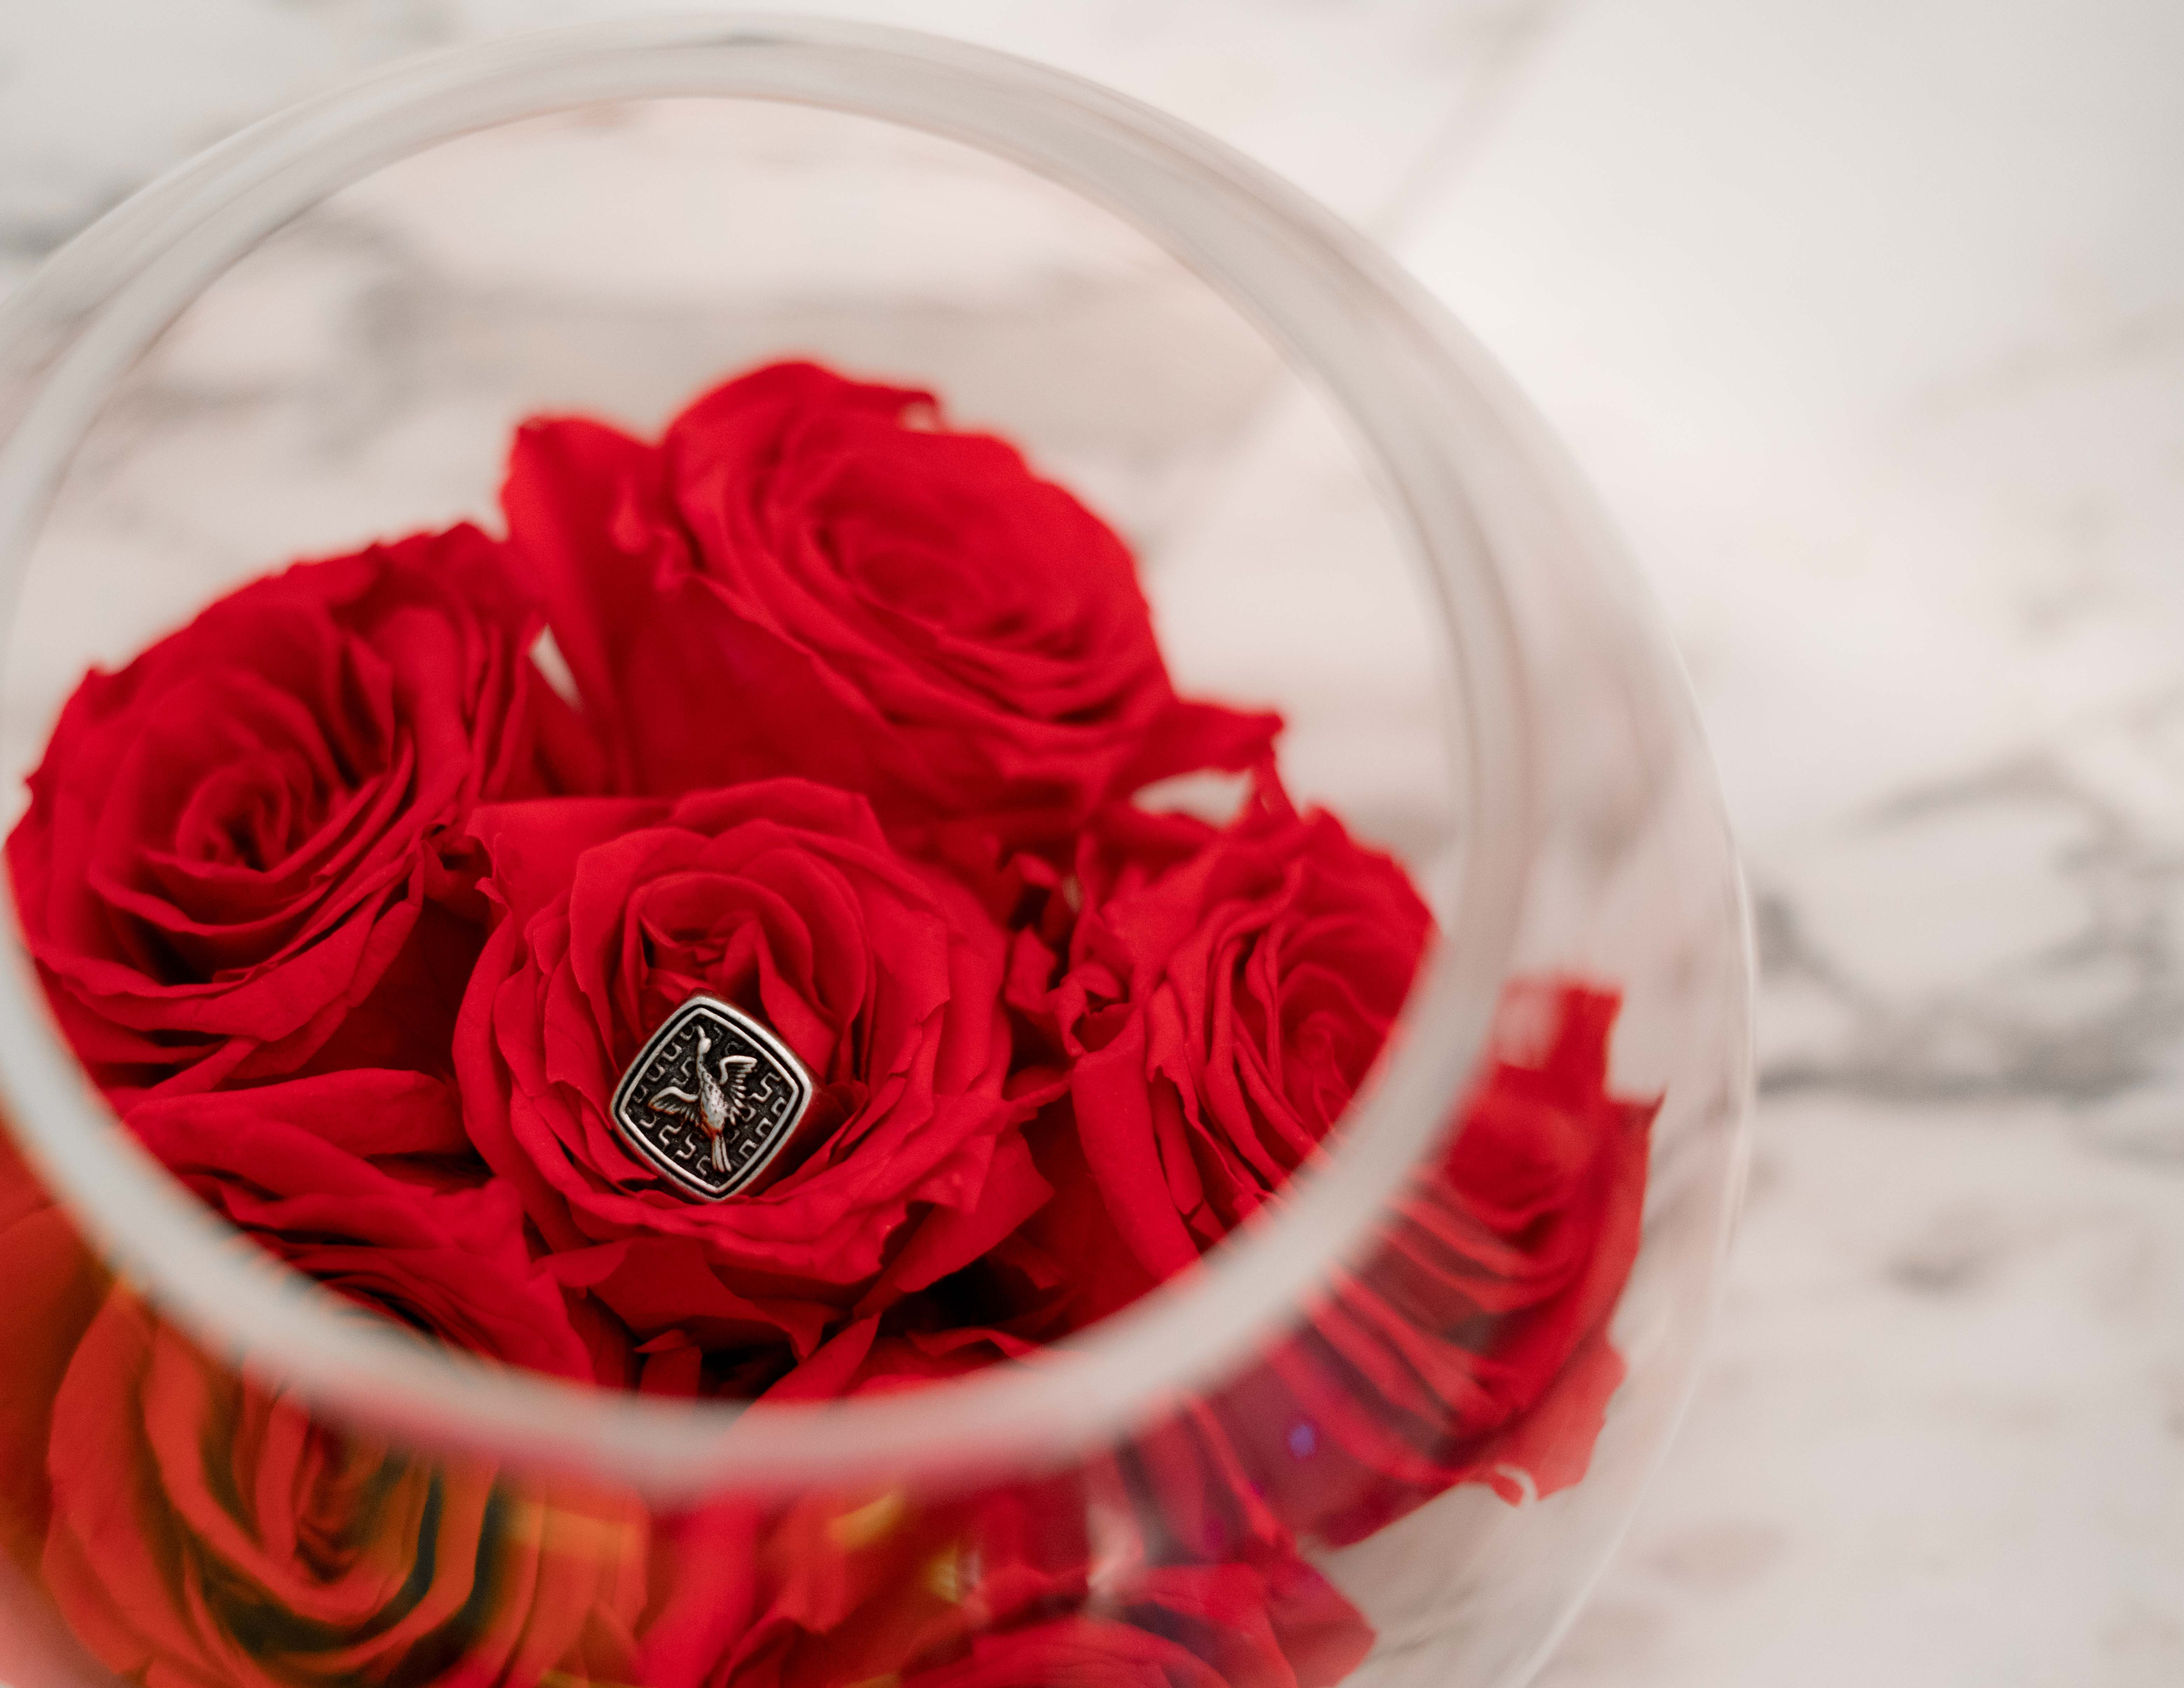 red flowers in clear glass bowl